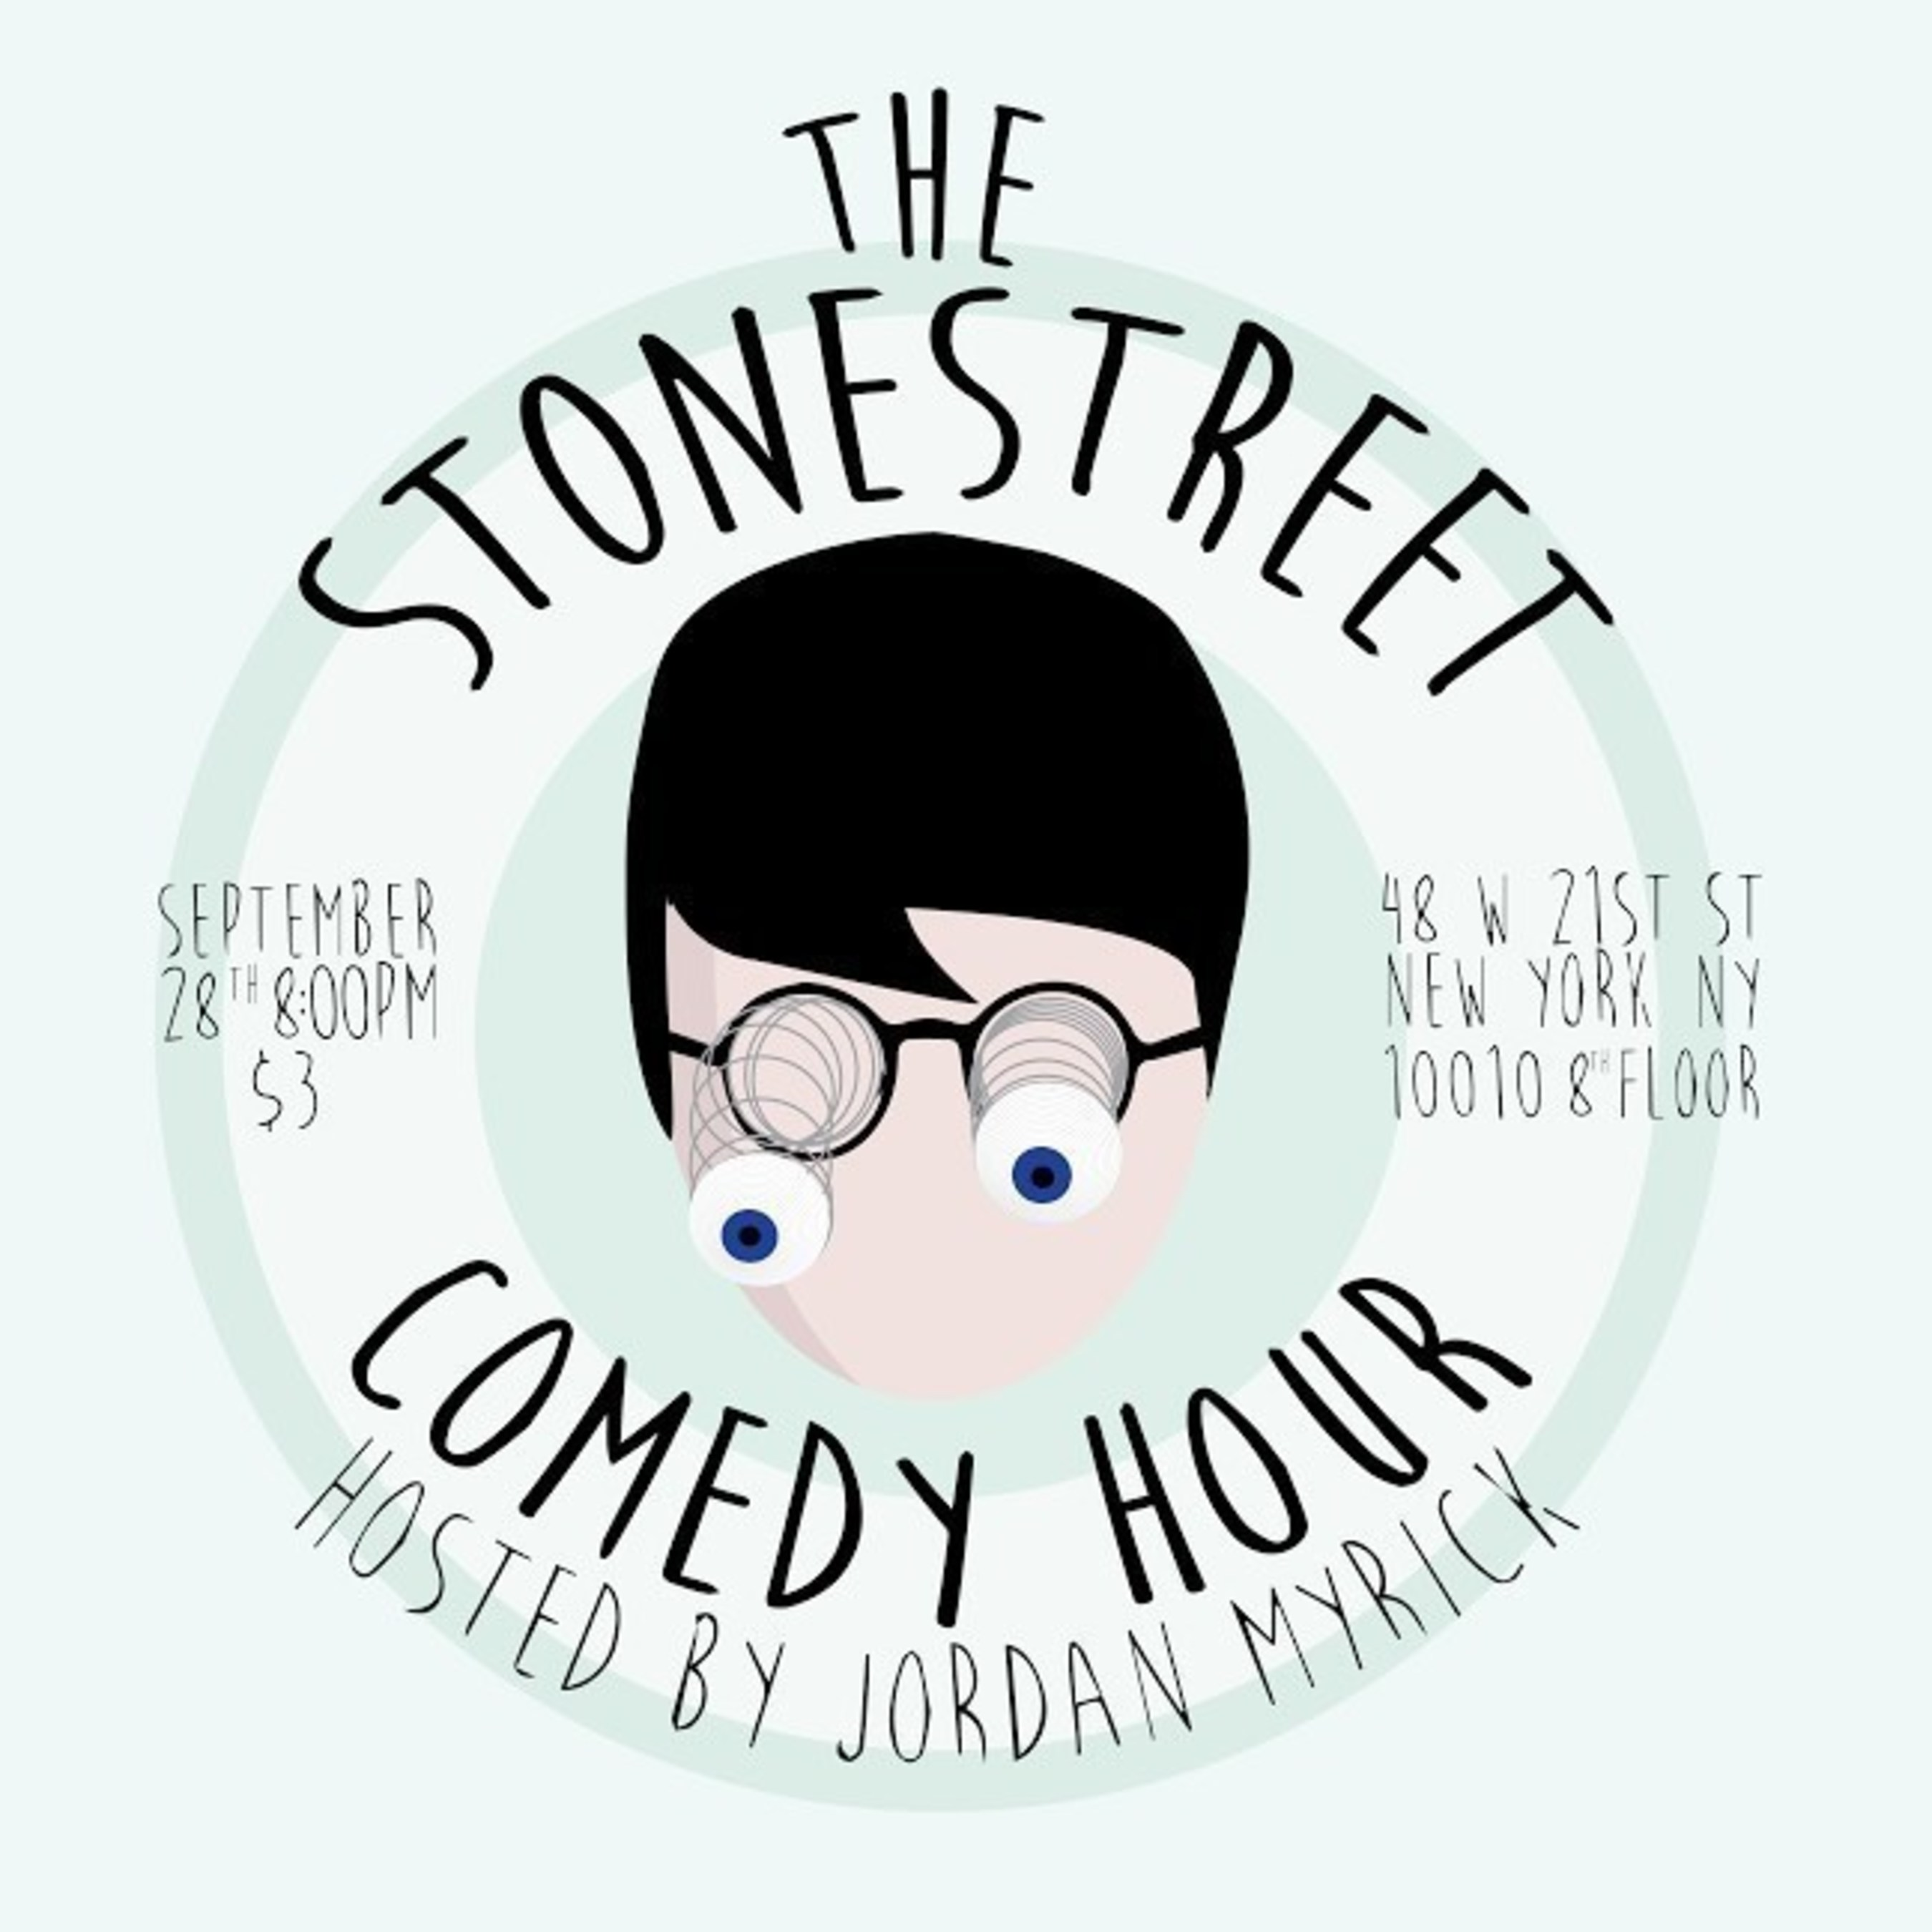 Stonestreet Studios' Comedy Hour Packs a Full House Every Month, A New Destination for Comedy Talent and Scouts.